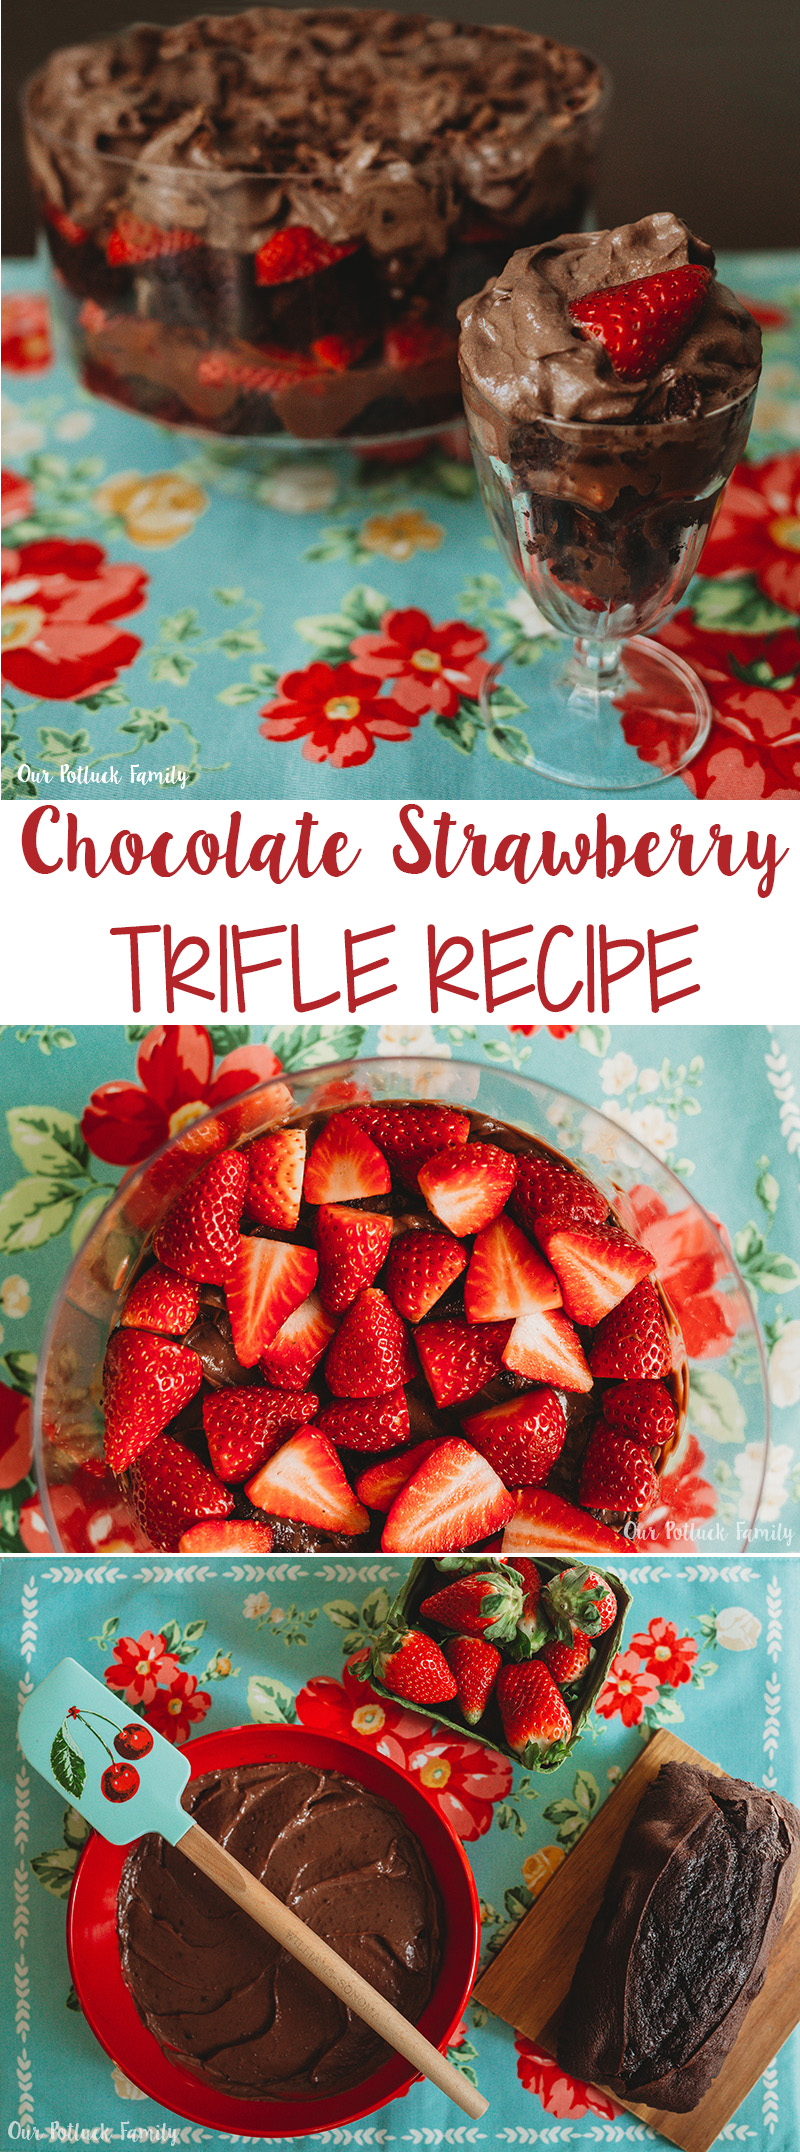 Chocolate Strawberry Trifle Recipe